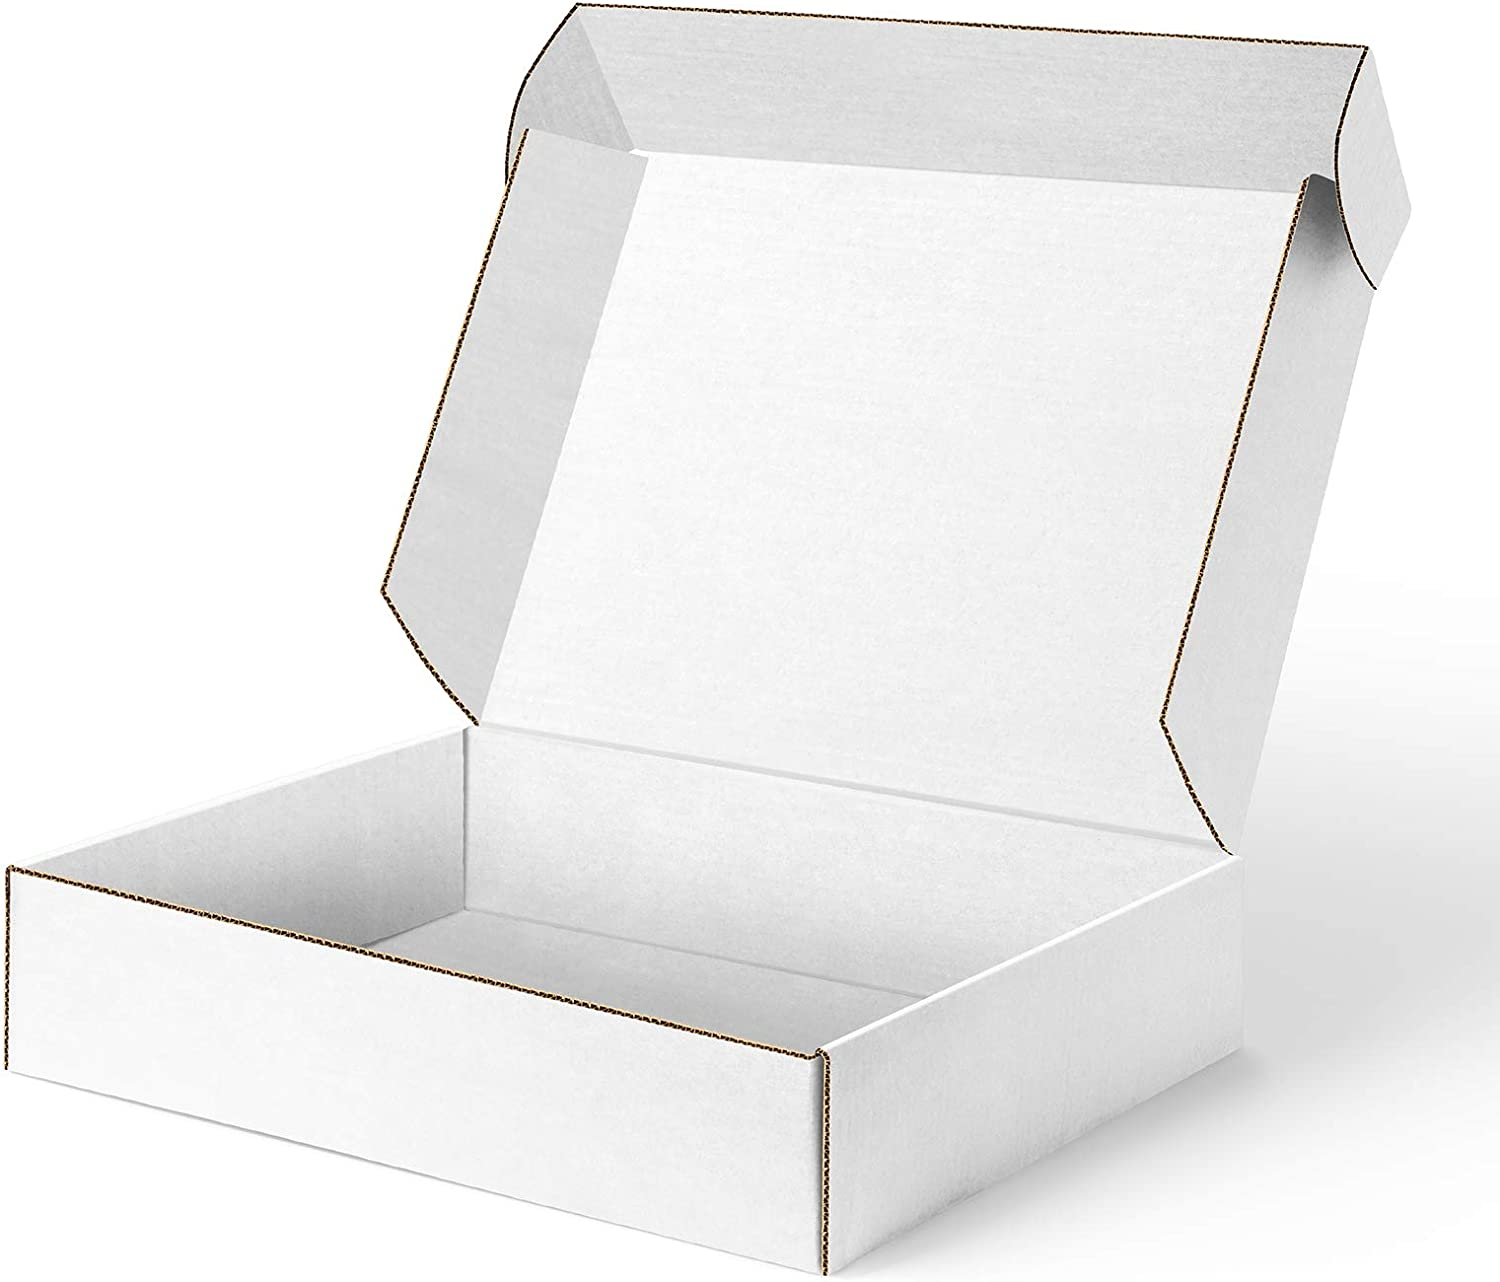 FDGDFH Choice 9×6×2 inches White Small Shipping of Some reservation Boxes Set R 25